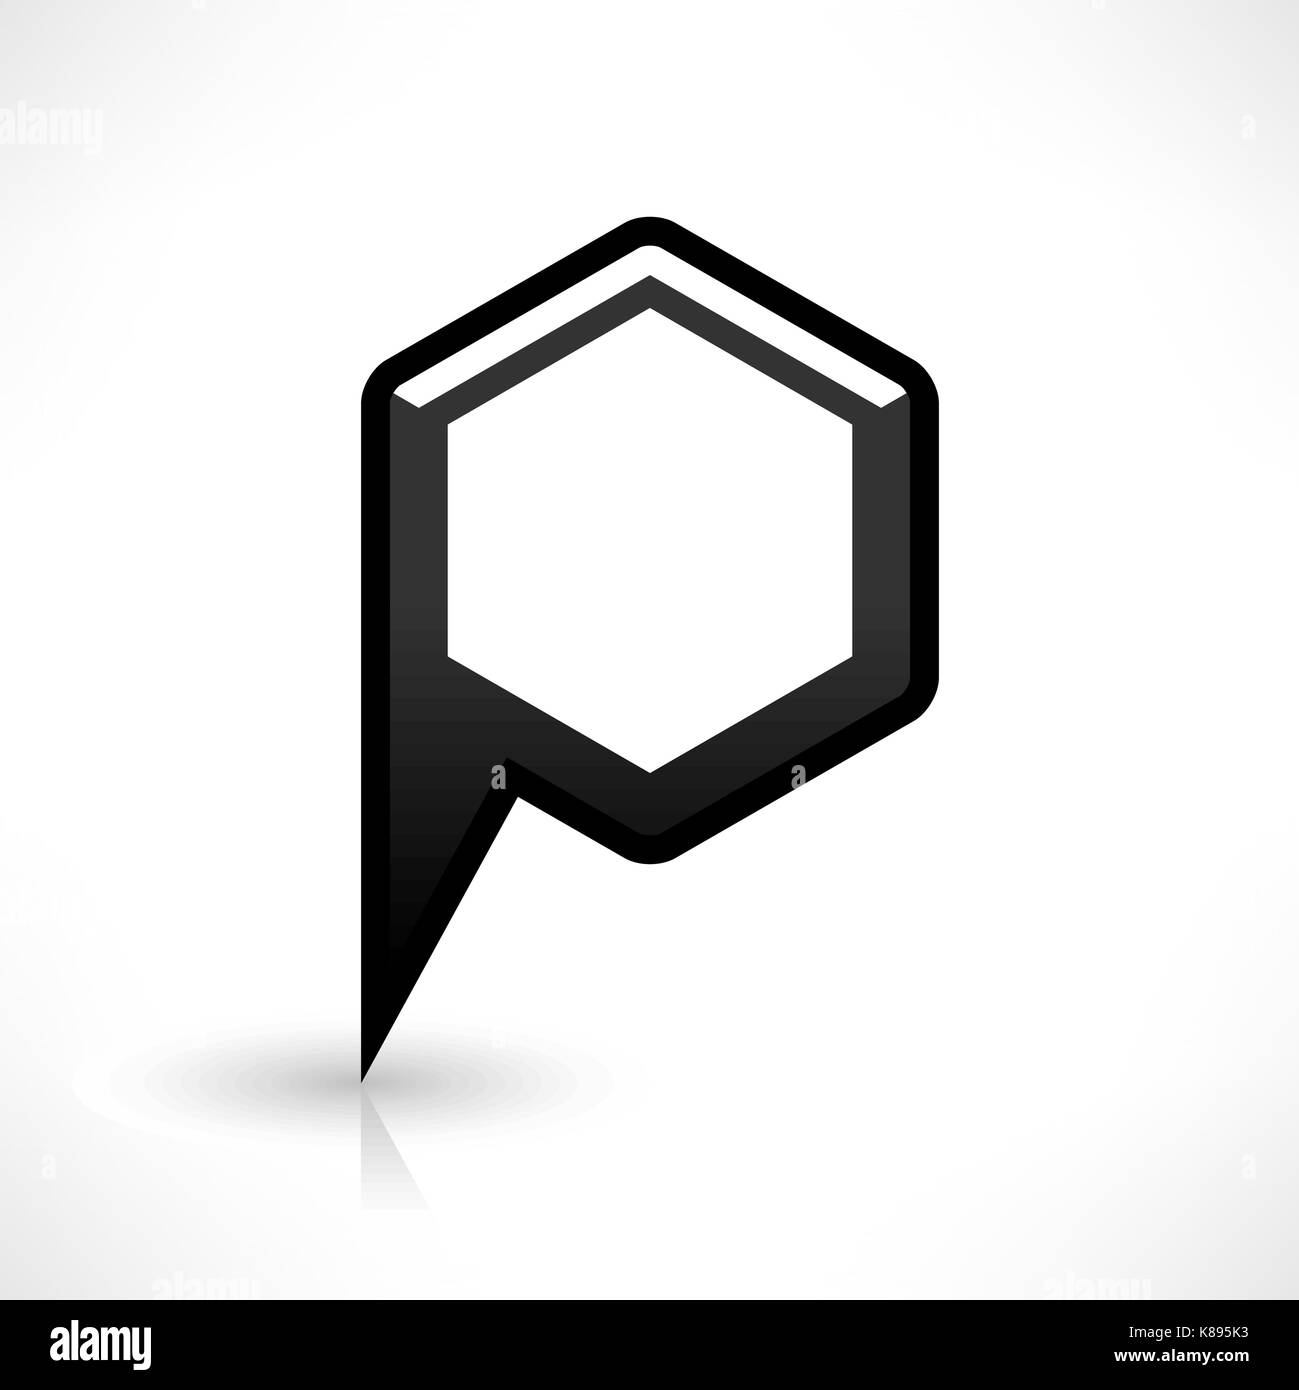 Blank map pin location sign rounded hexagon icon in flat style blank map pin location sign rounded hexagon icon in flat style empty black shapes with gray oval shadow and reflection on white background buycottarizona Gallery